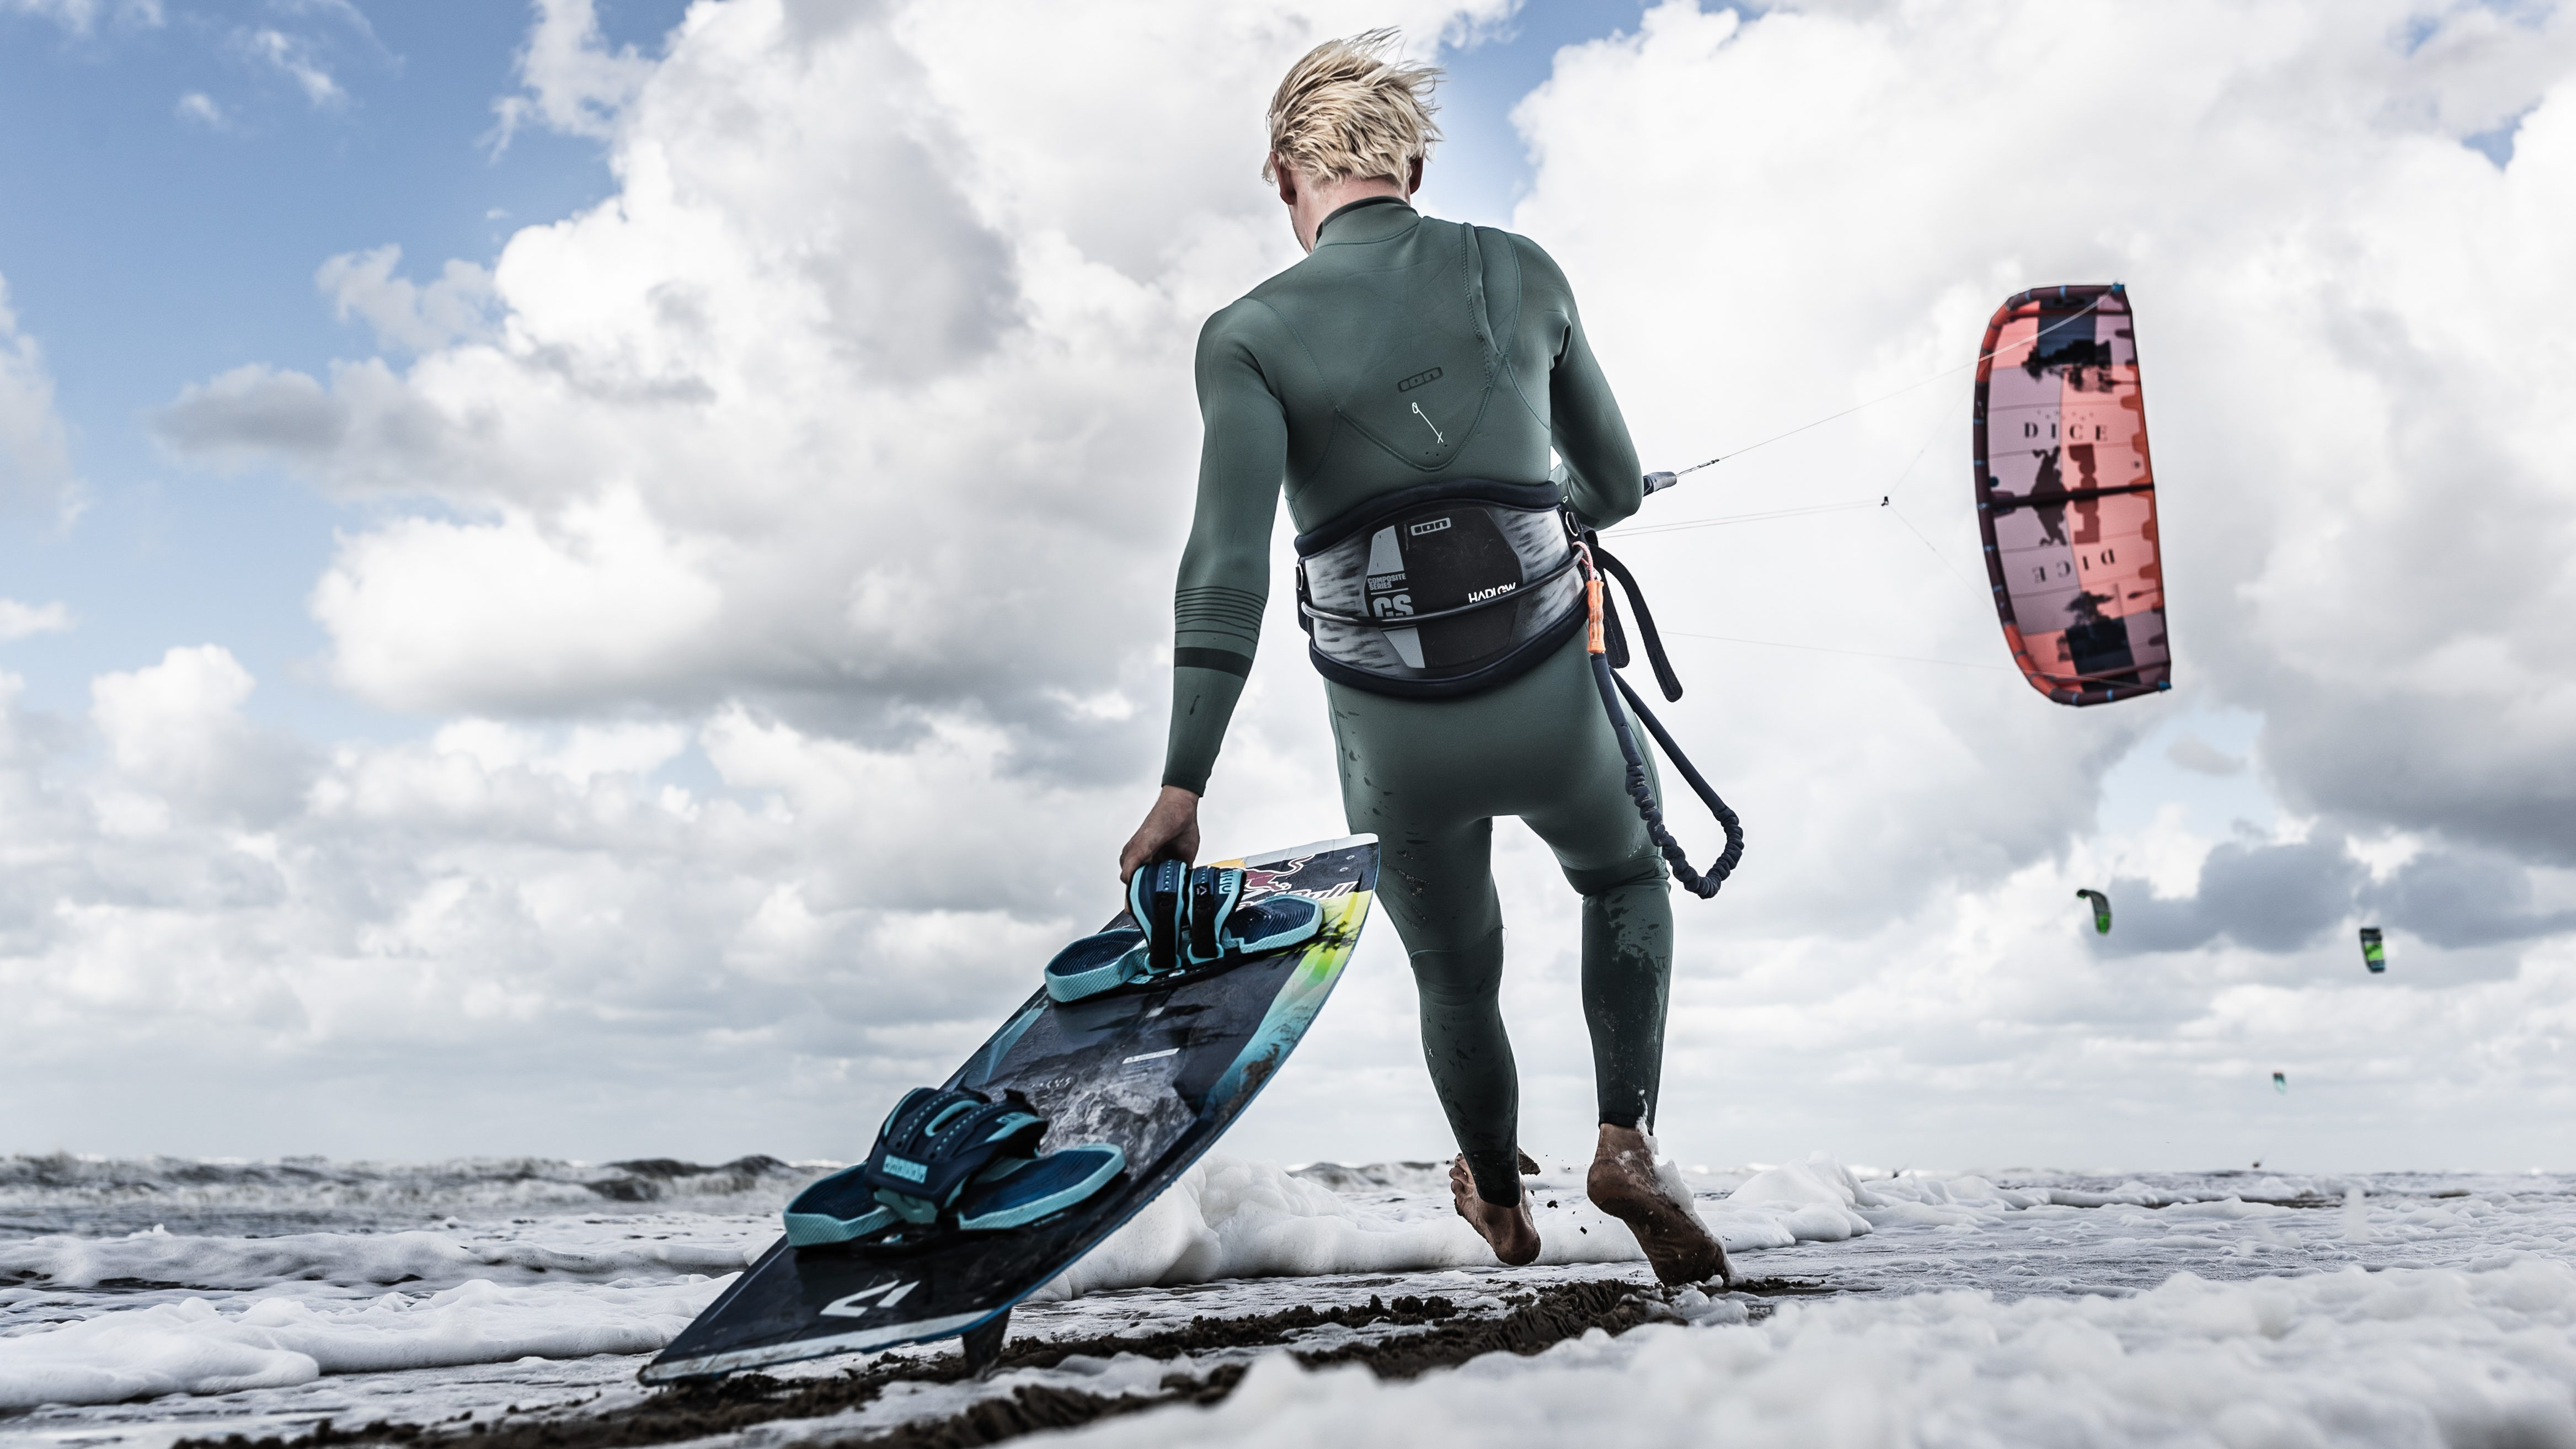 Lasse Walker kitesurfs in Noordwijk, The Netherlands on September 21, 2018